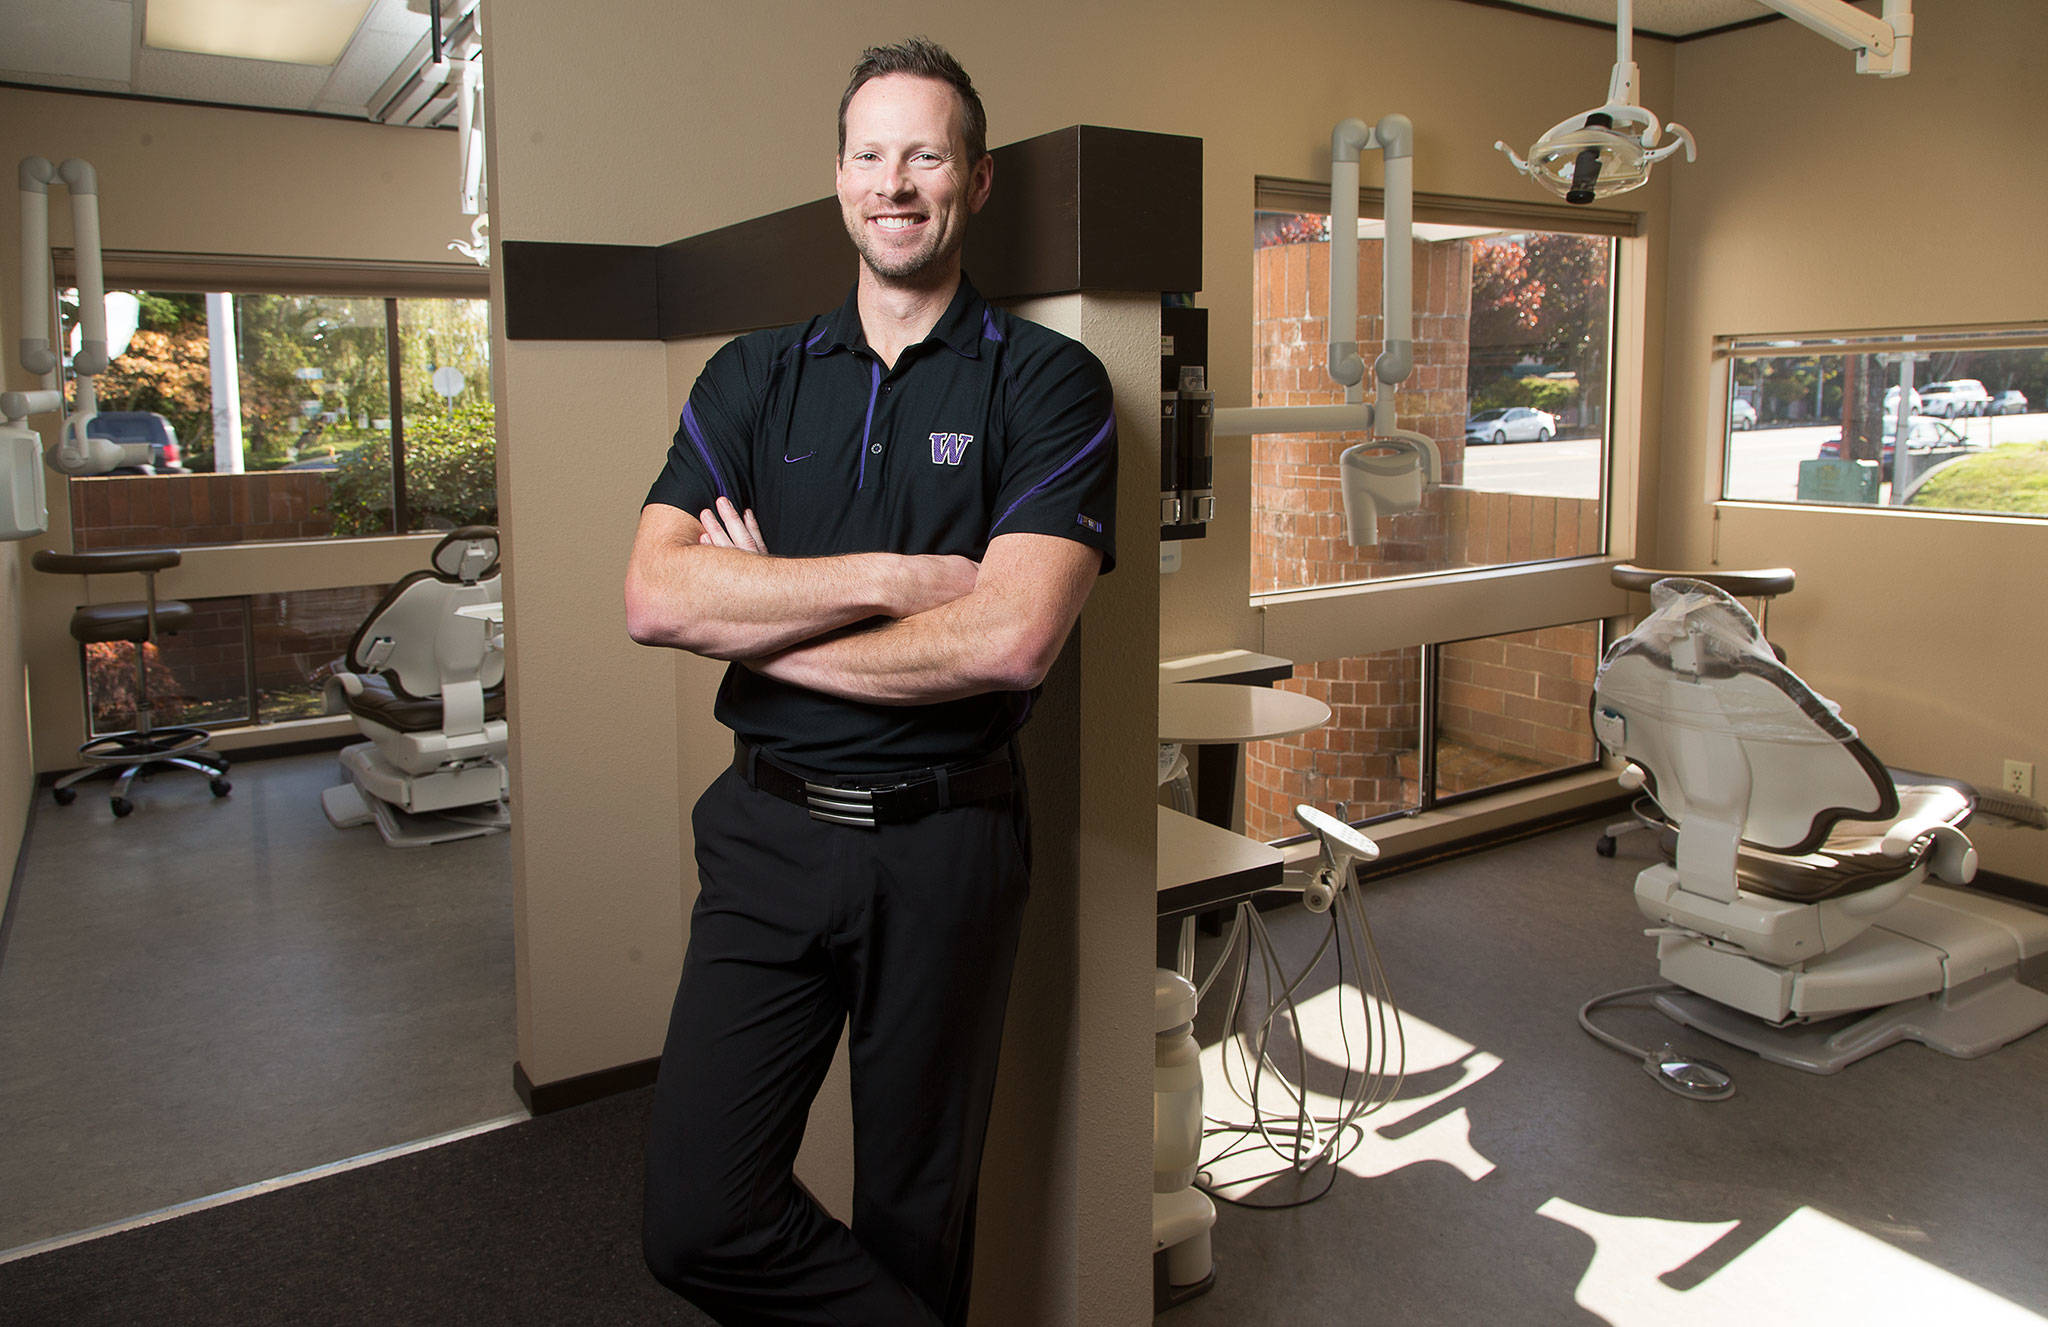 Dr. Kale Eckland and his two brothers are local dentists. They developed a private dental plan while their offices were shut due to COVID-19 last spring. (Andy Bronson / The Herald)